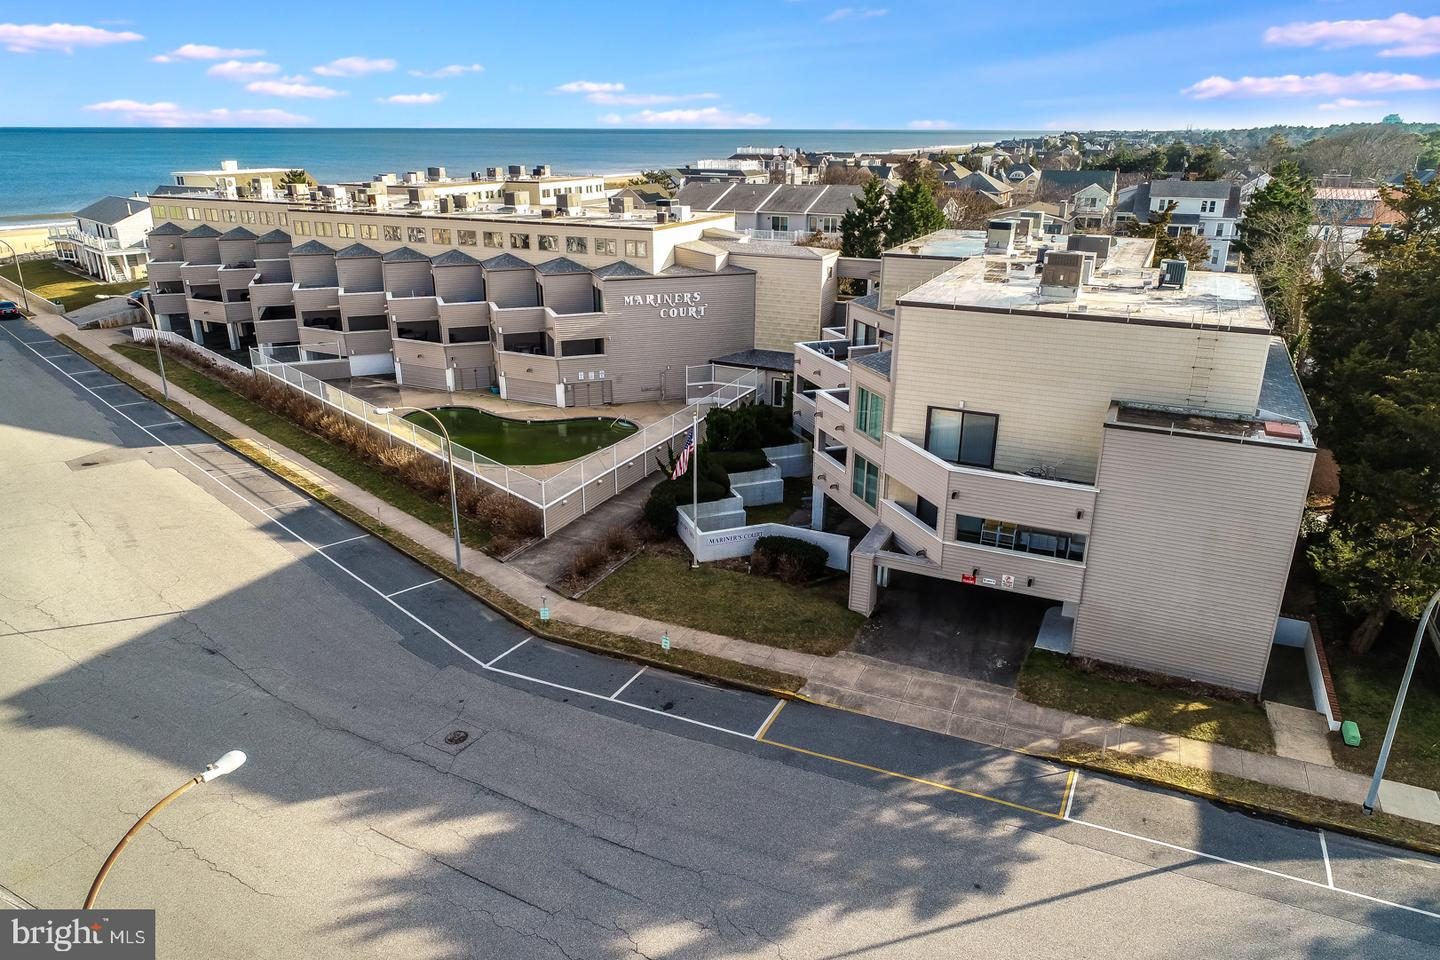 DESU129972-301391657561-2019-02-05-22-53-54 4 Laurel St #112c | Rehoboth Beach, DE Real Estate For Sale | MLS# Desu129972  - Rehoboth Beach Real Estate - Bryce Lingo and Shaun Tull REALTORS, Rehoboth Beach, Delaware